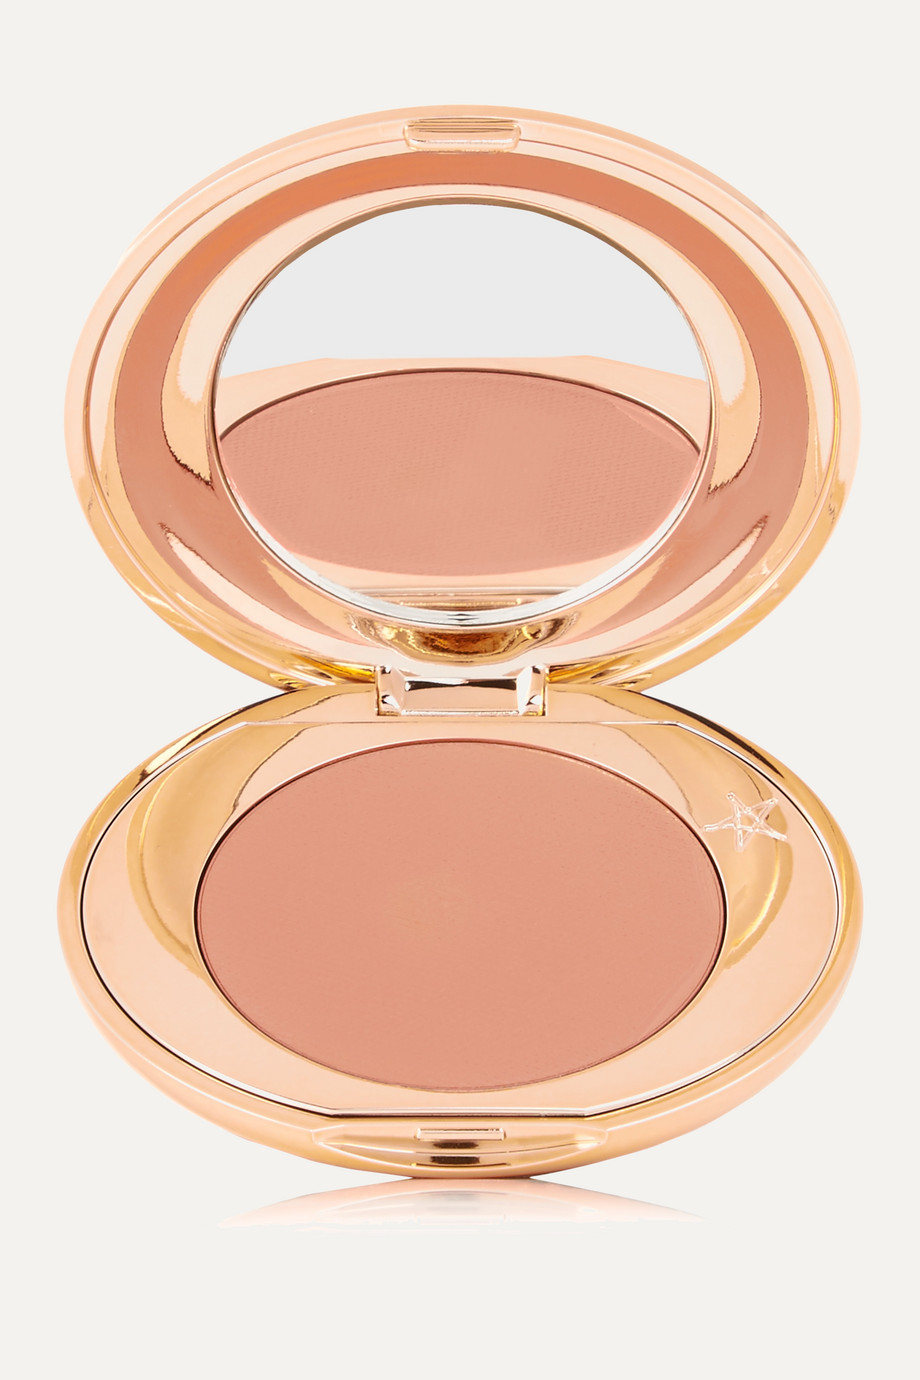 Charlotte Tilbury Magic Vanish - Medium